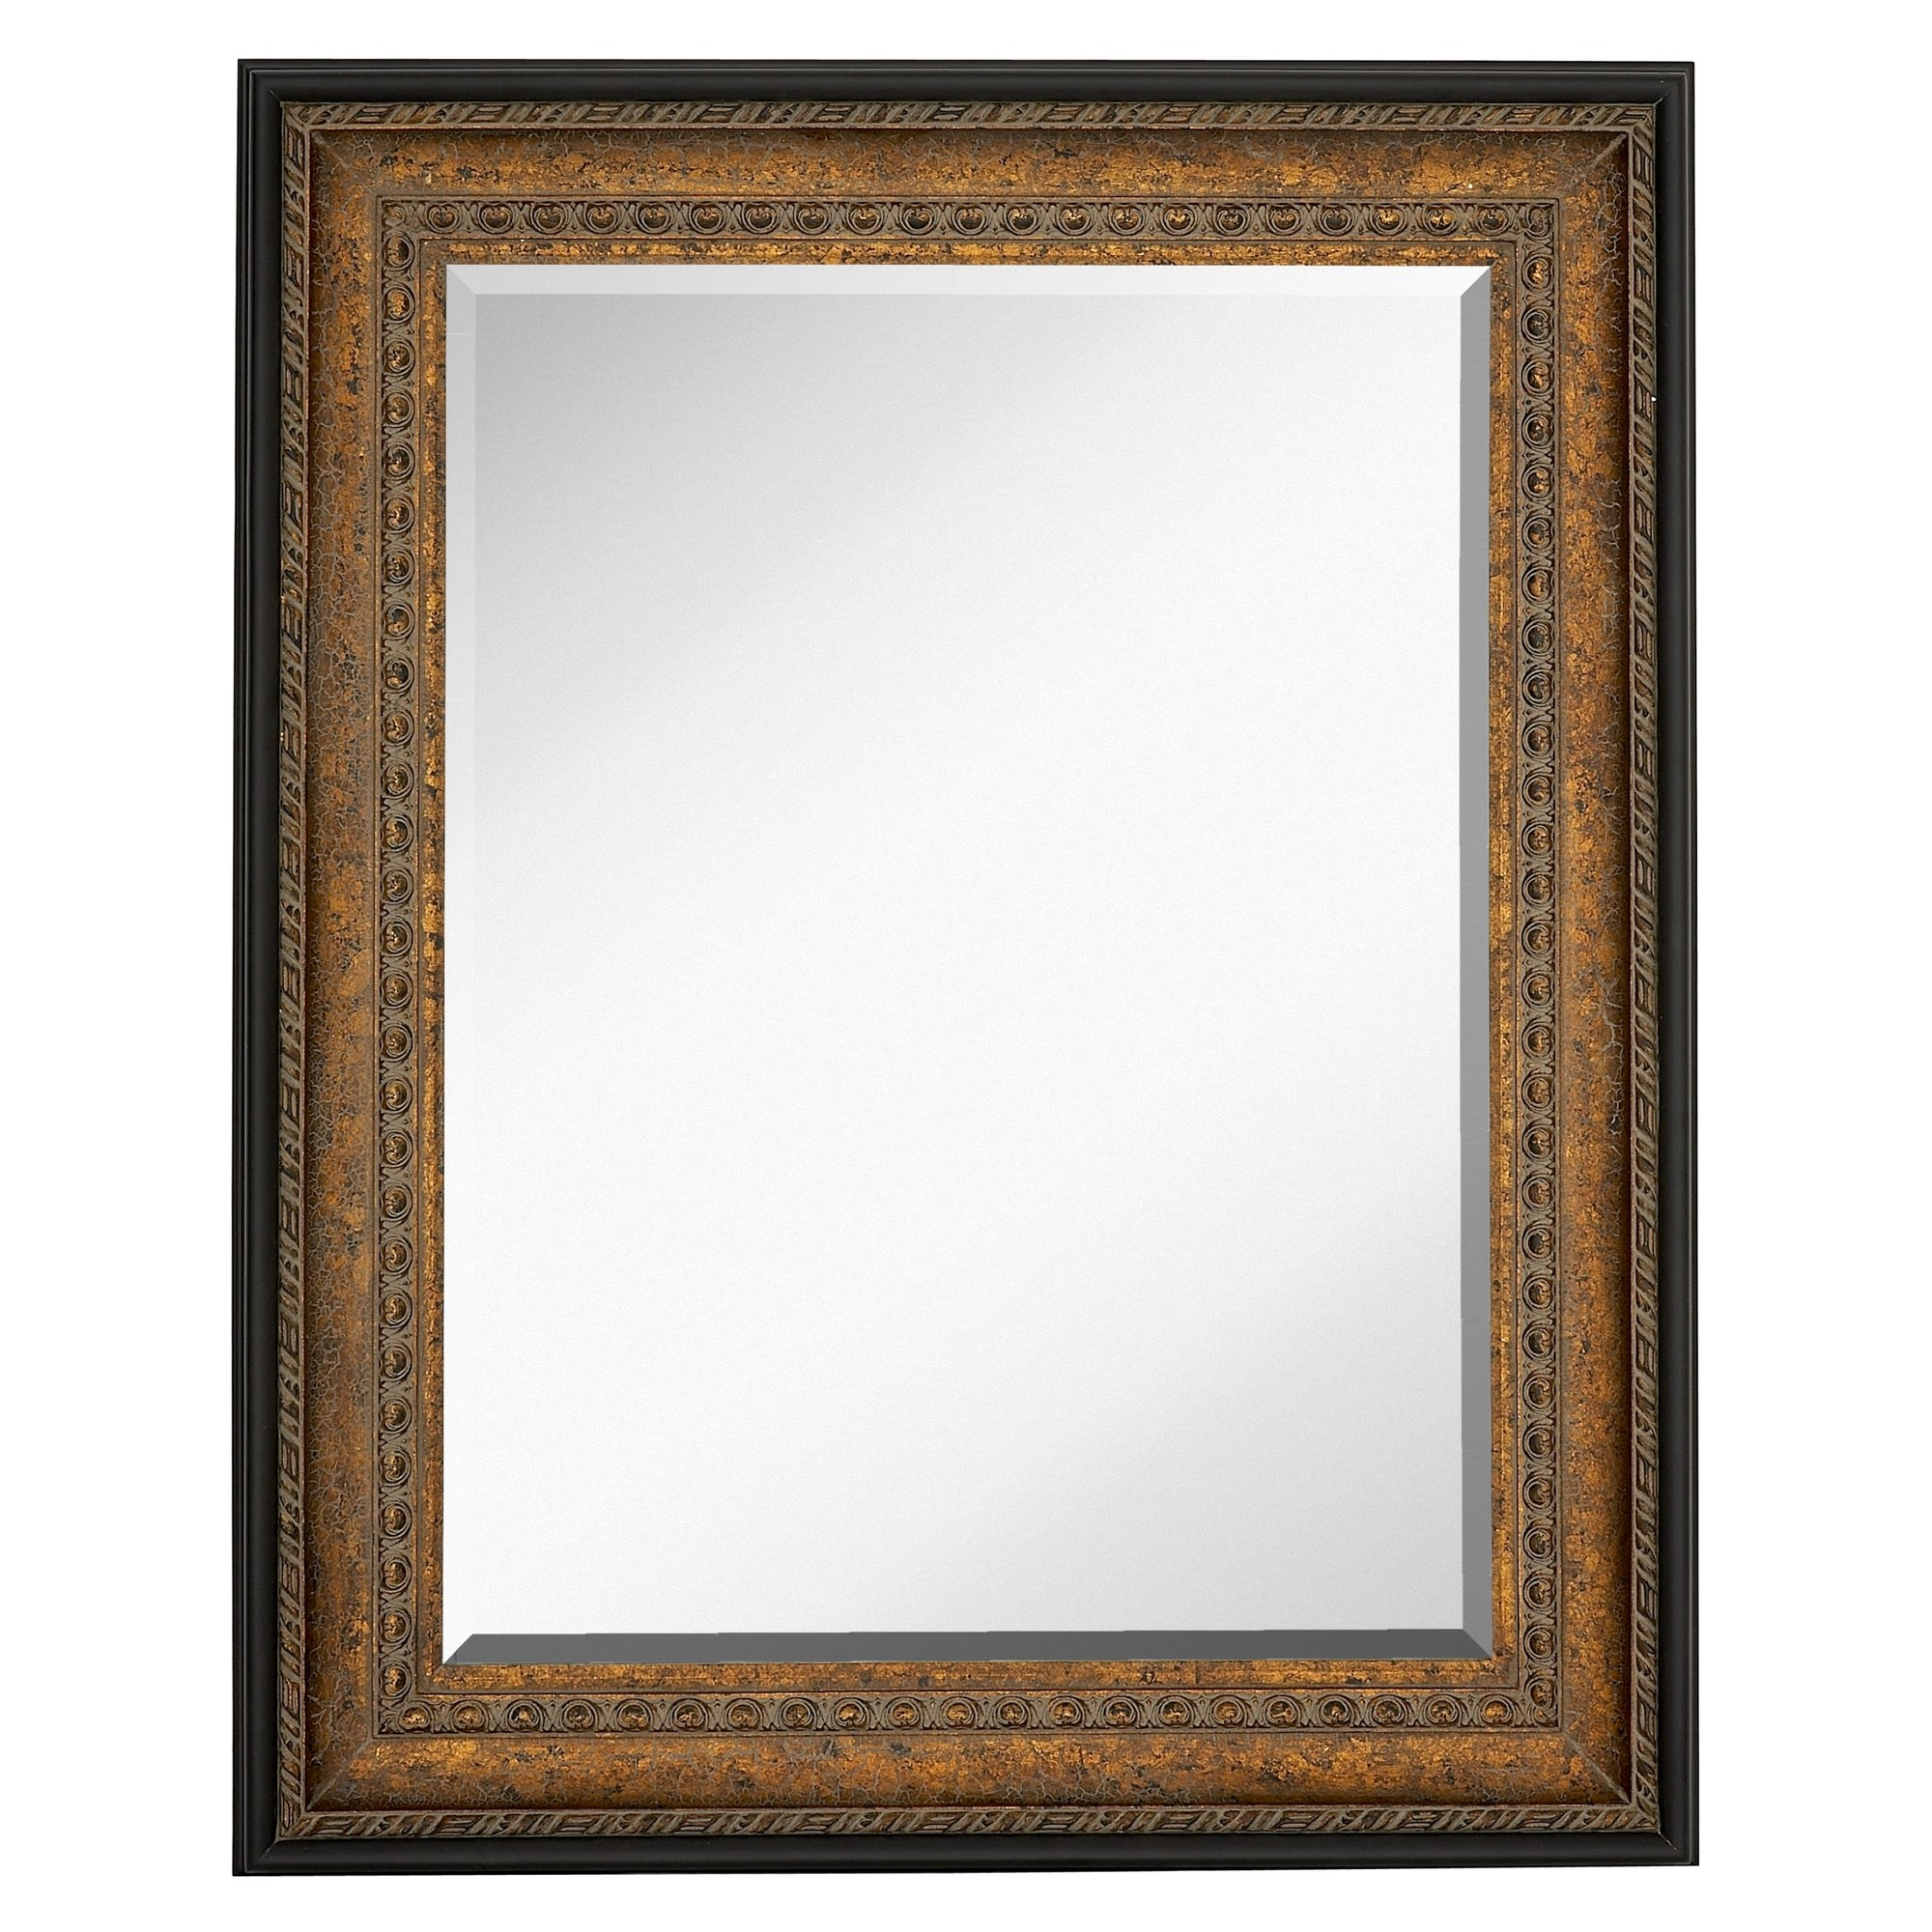 Majestic Mirror Large Rectangular Mirror With Antique Bronze With Regard To Large Bronze Mirror (Image 10 of 15)